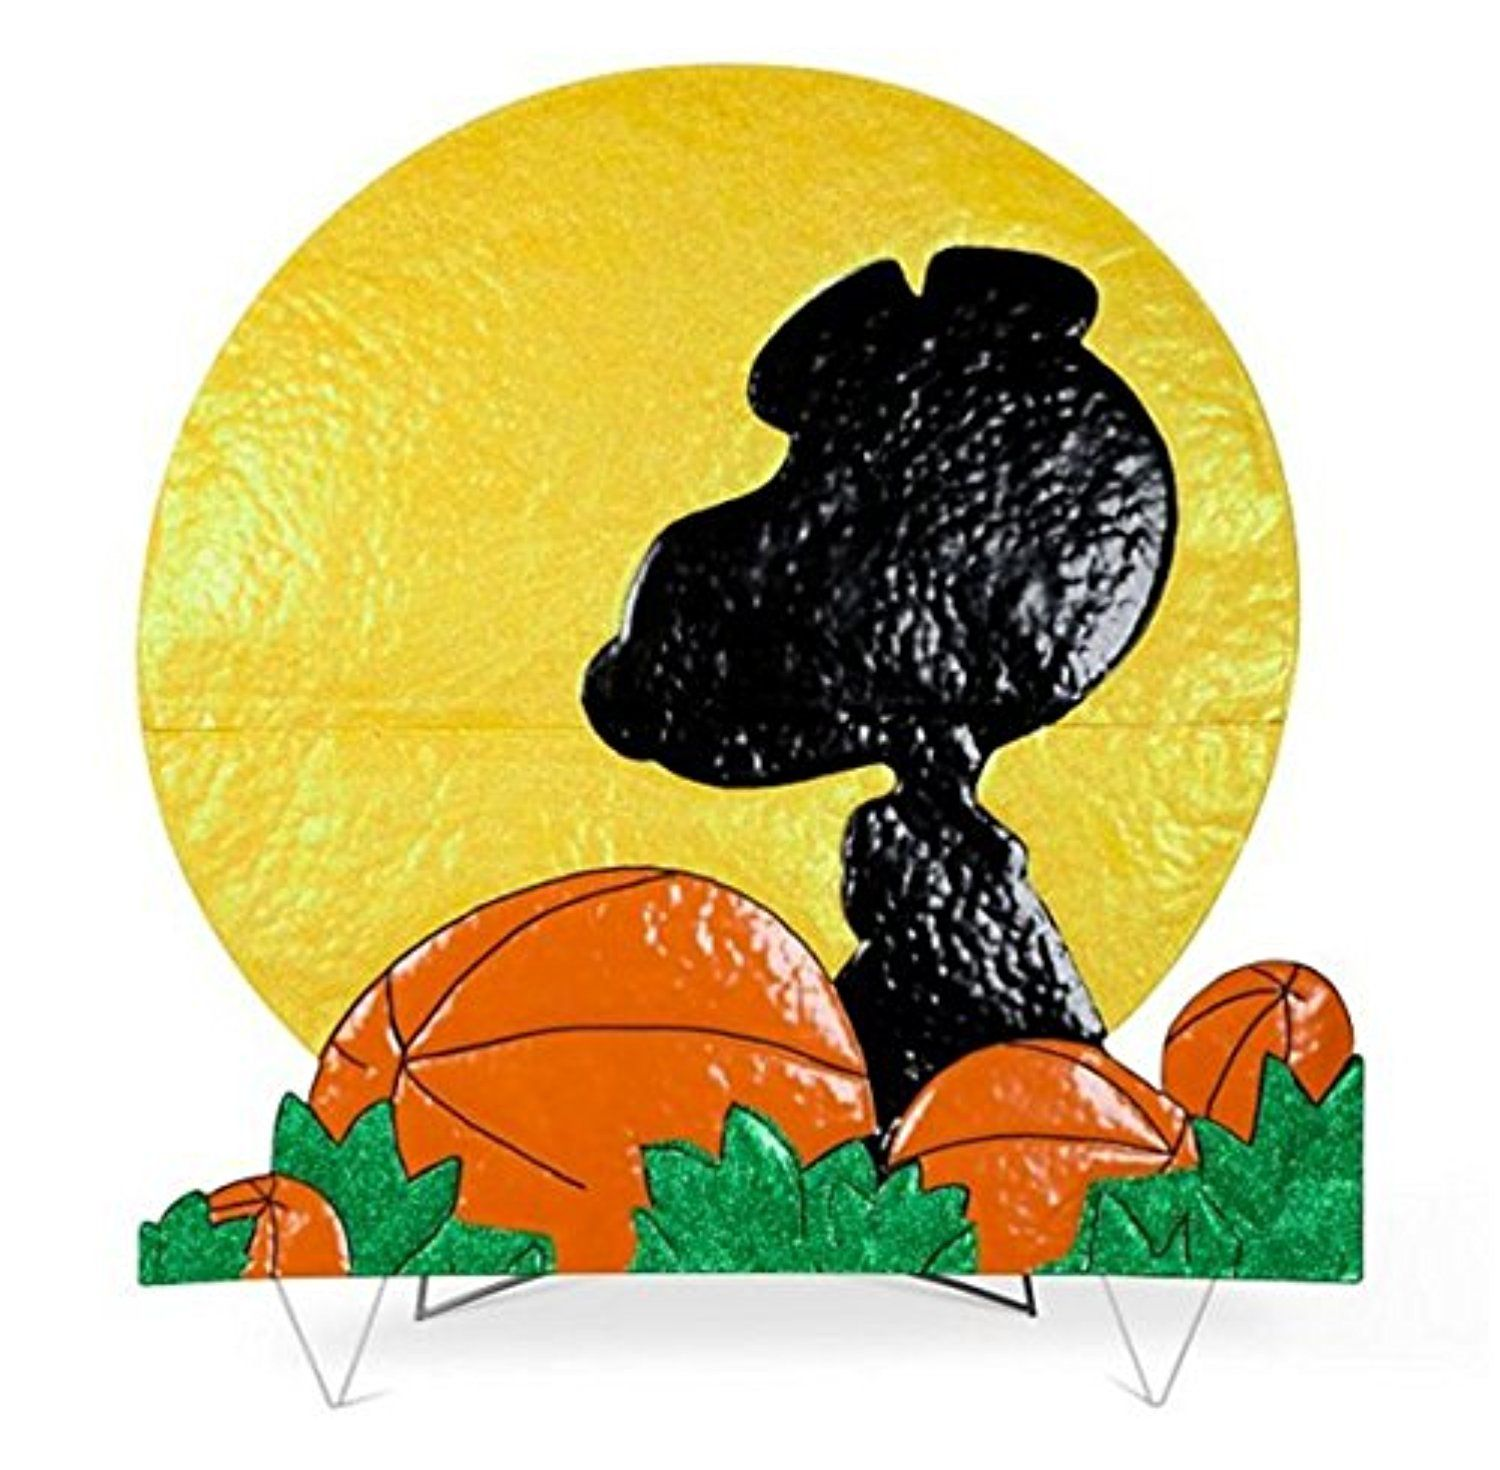 Peanuts Snoopy Silhouette with Moon Halloween Yard